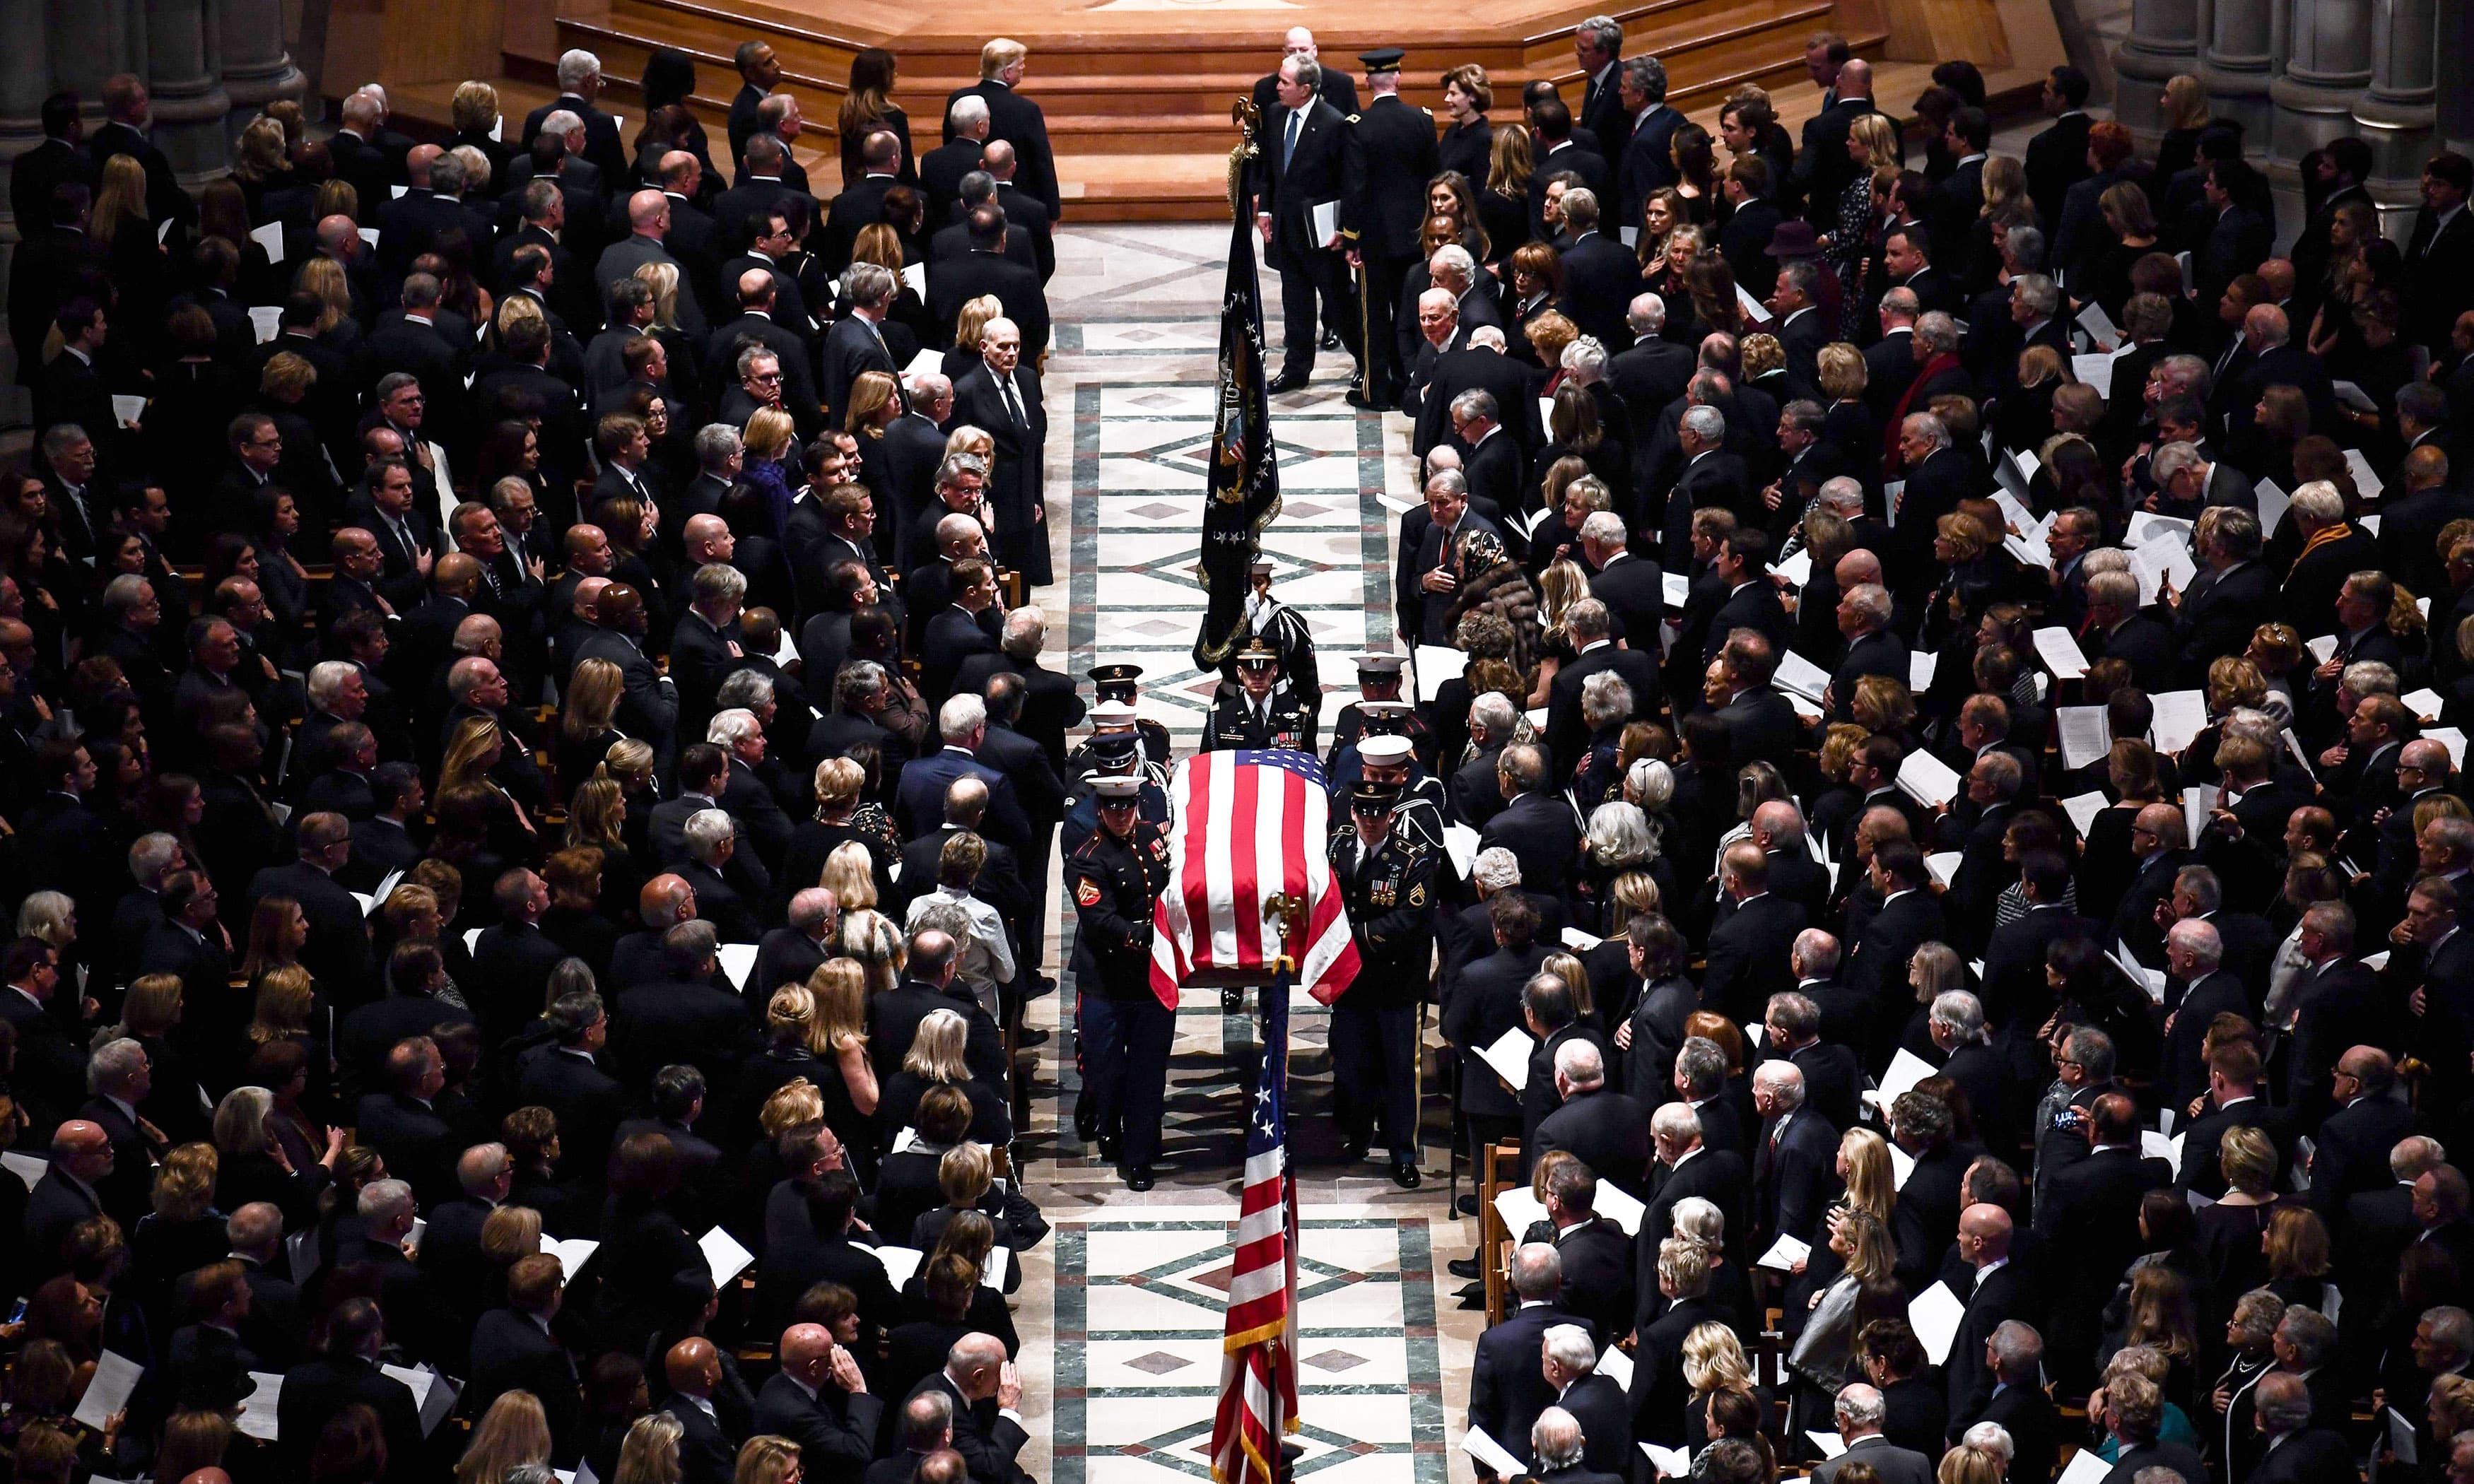 The casket of former president George H W Bush is carried out by pallbearers during his state funeral. —AFP